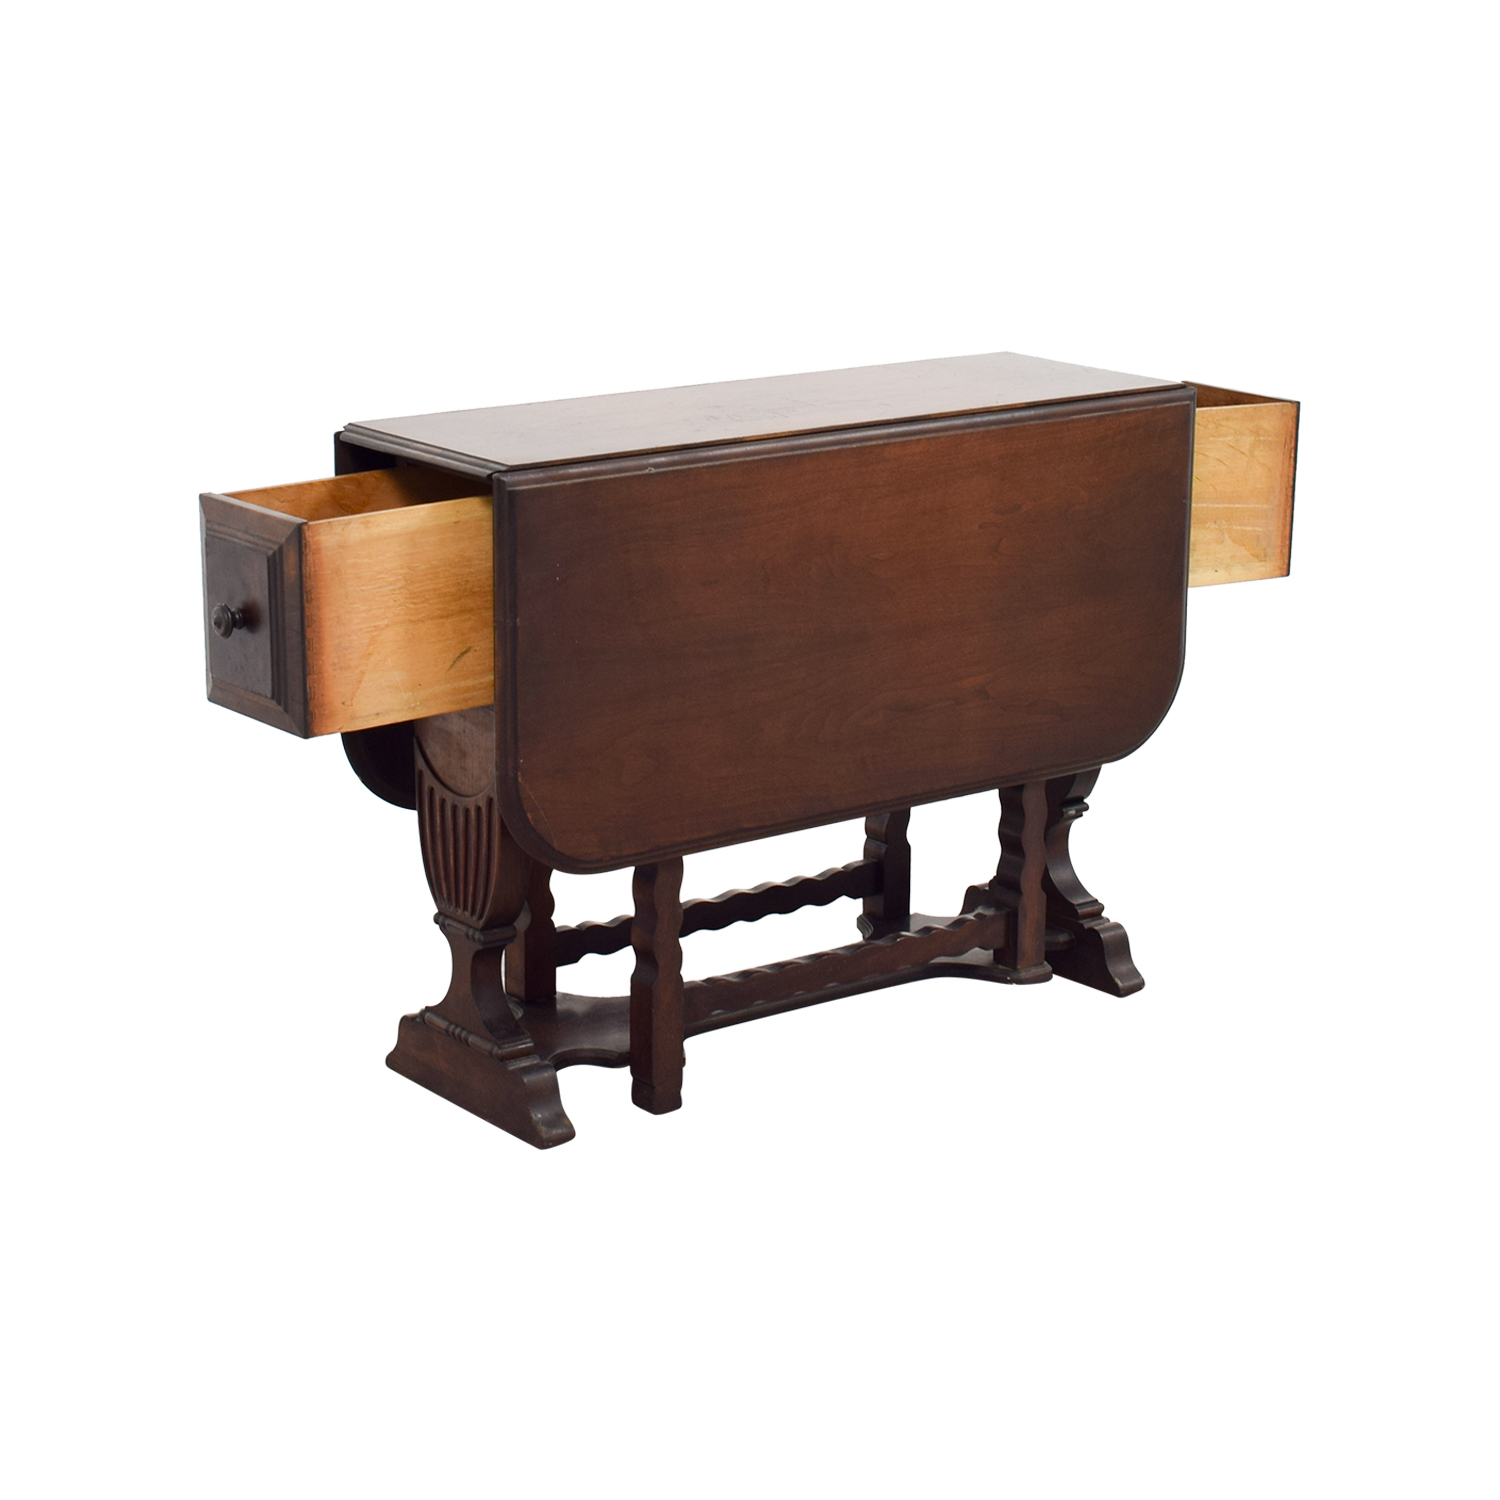 1950s Drop Leaf Table with Drawers sale